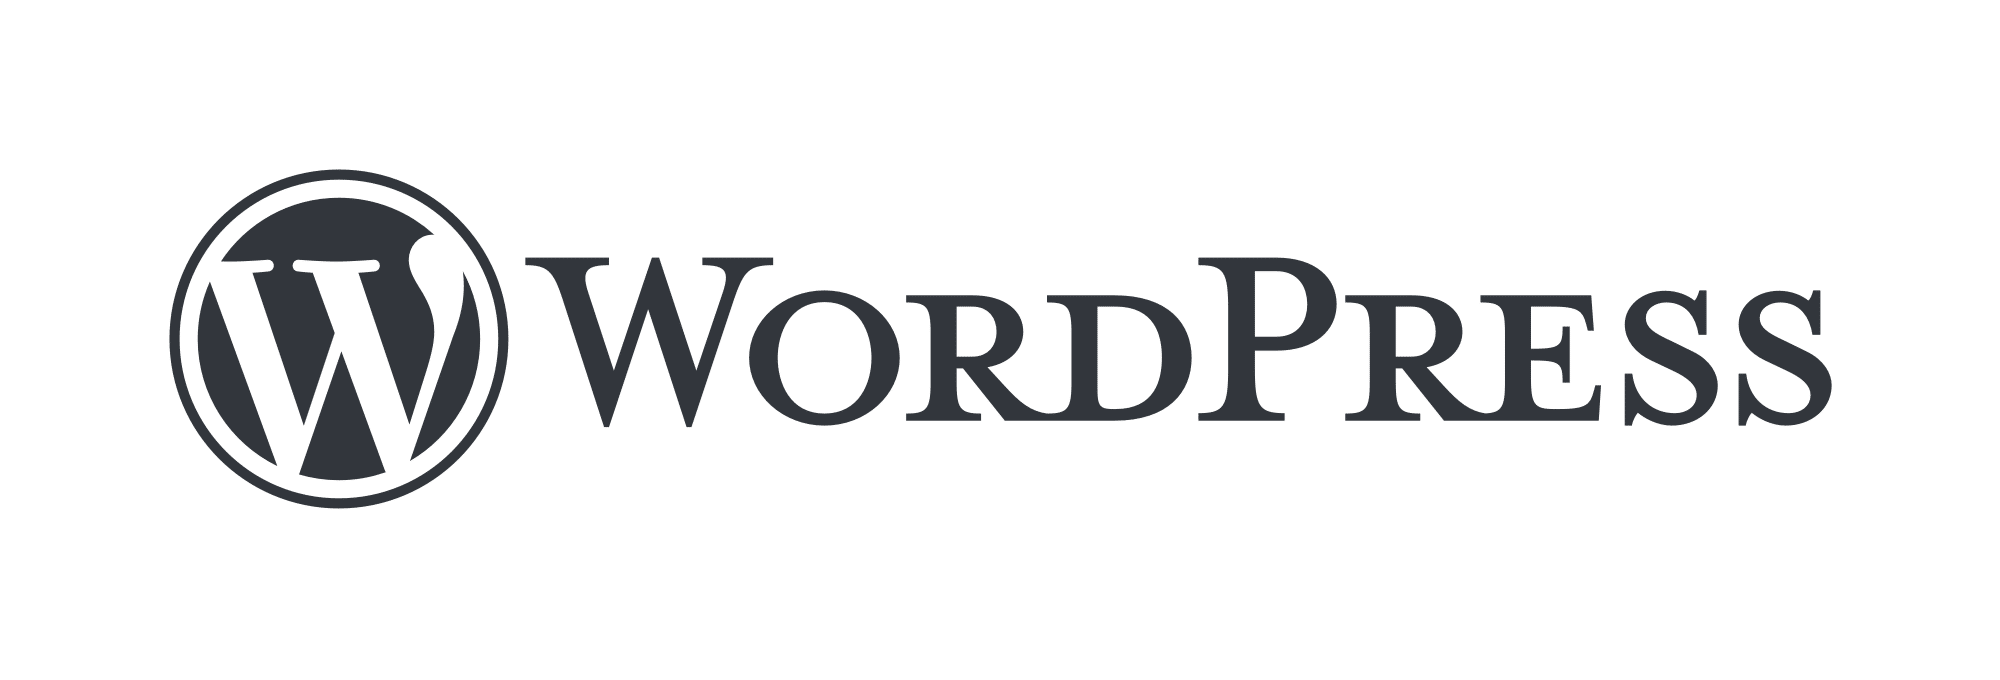 WordPress Thrust marketing online marketing